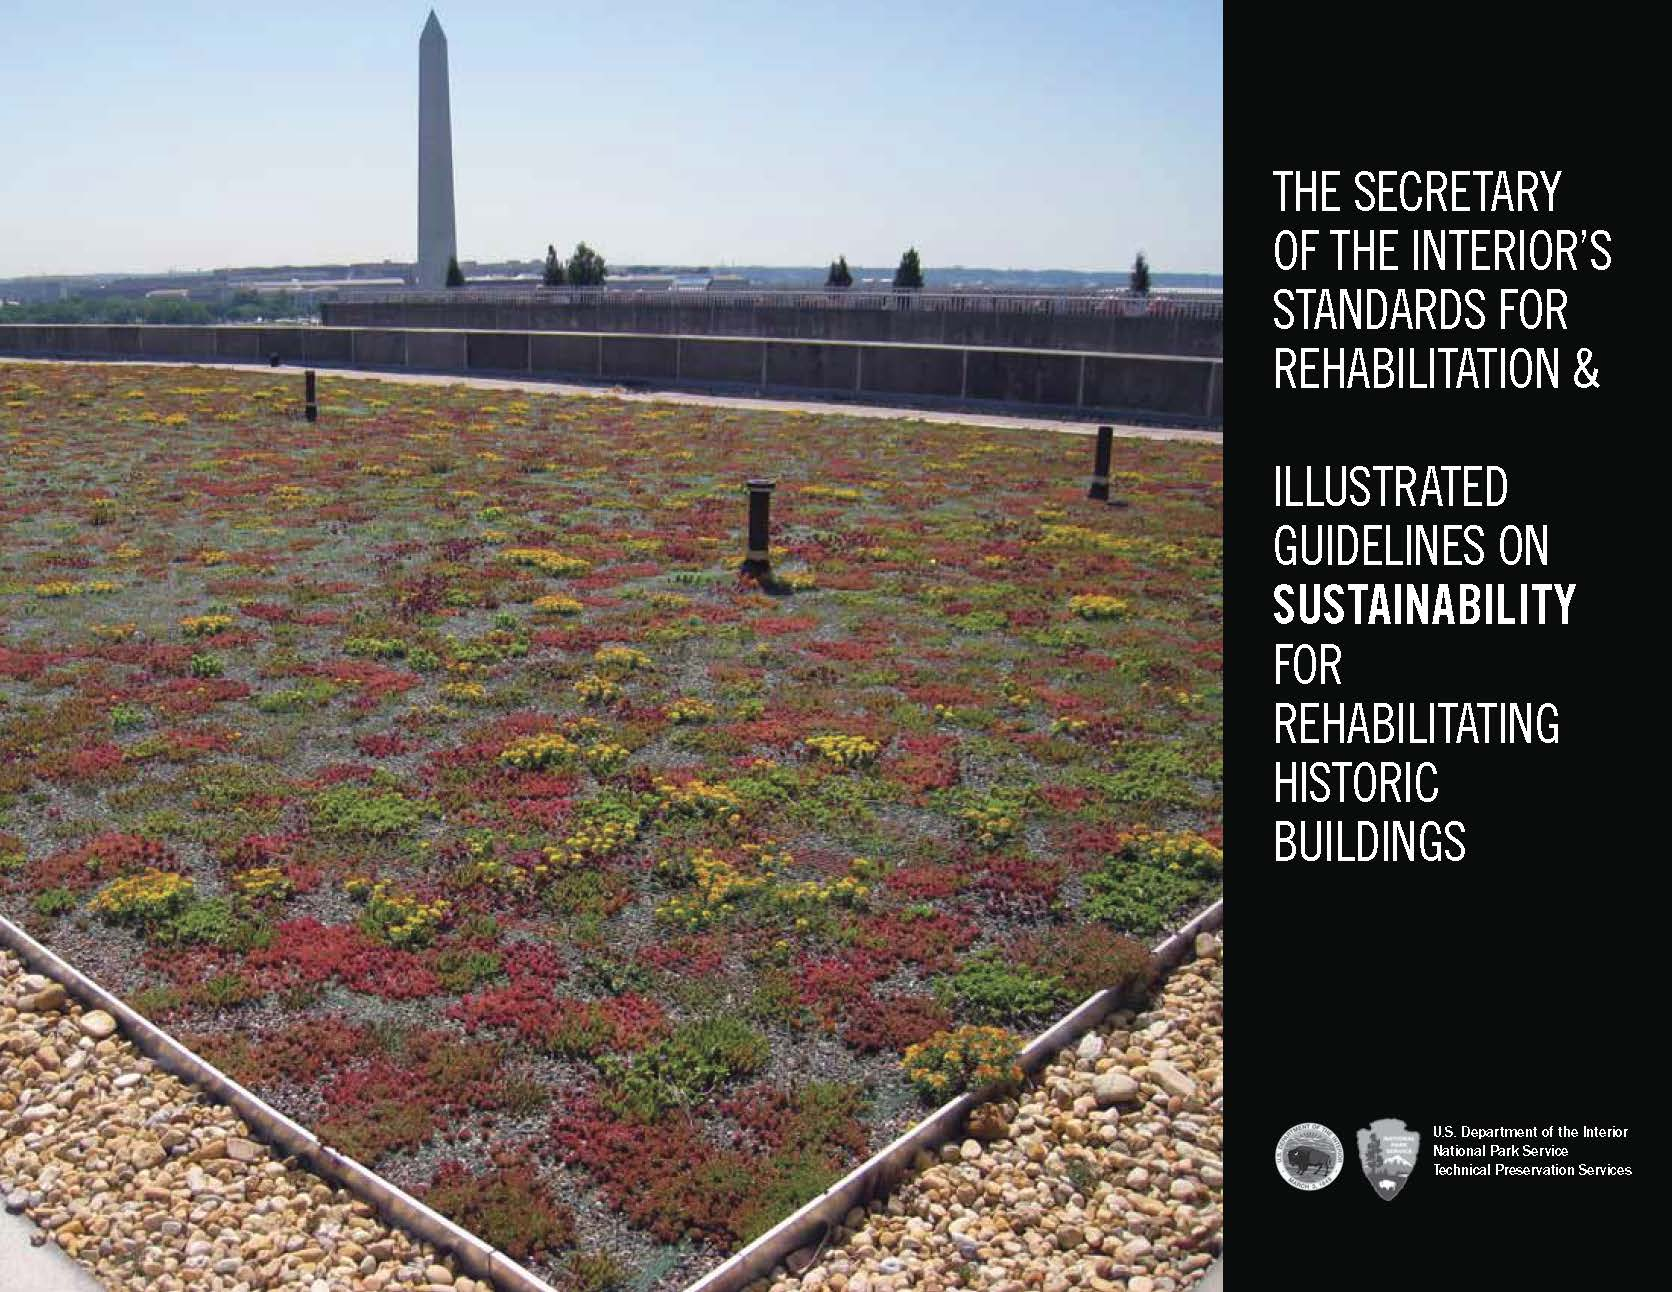 NPS Illustrated Guidelines on Sustainability for Historic Rehabilitation